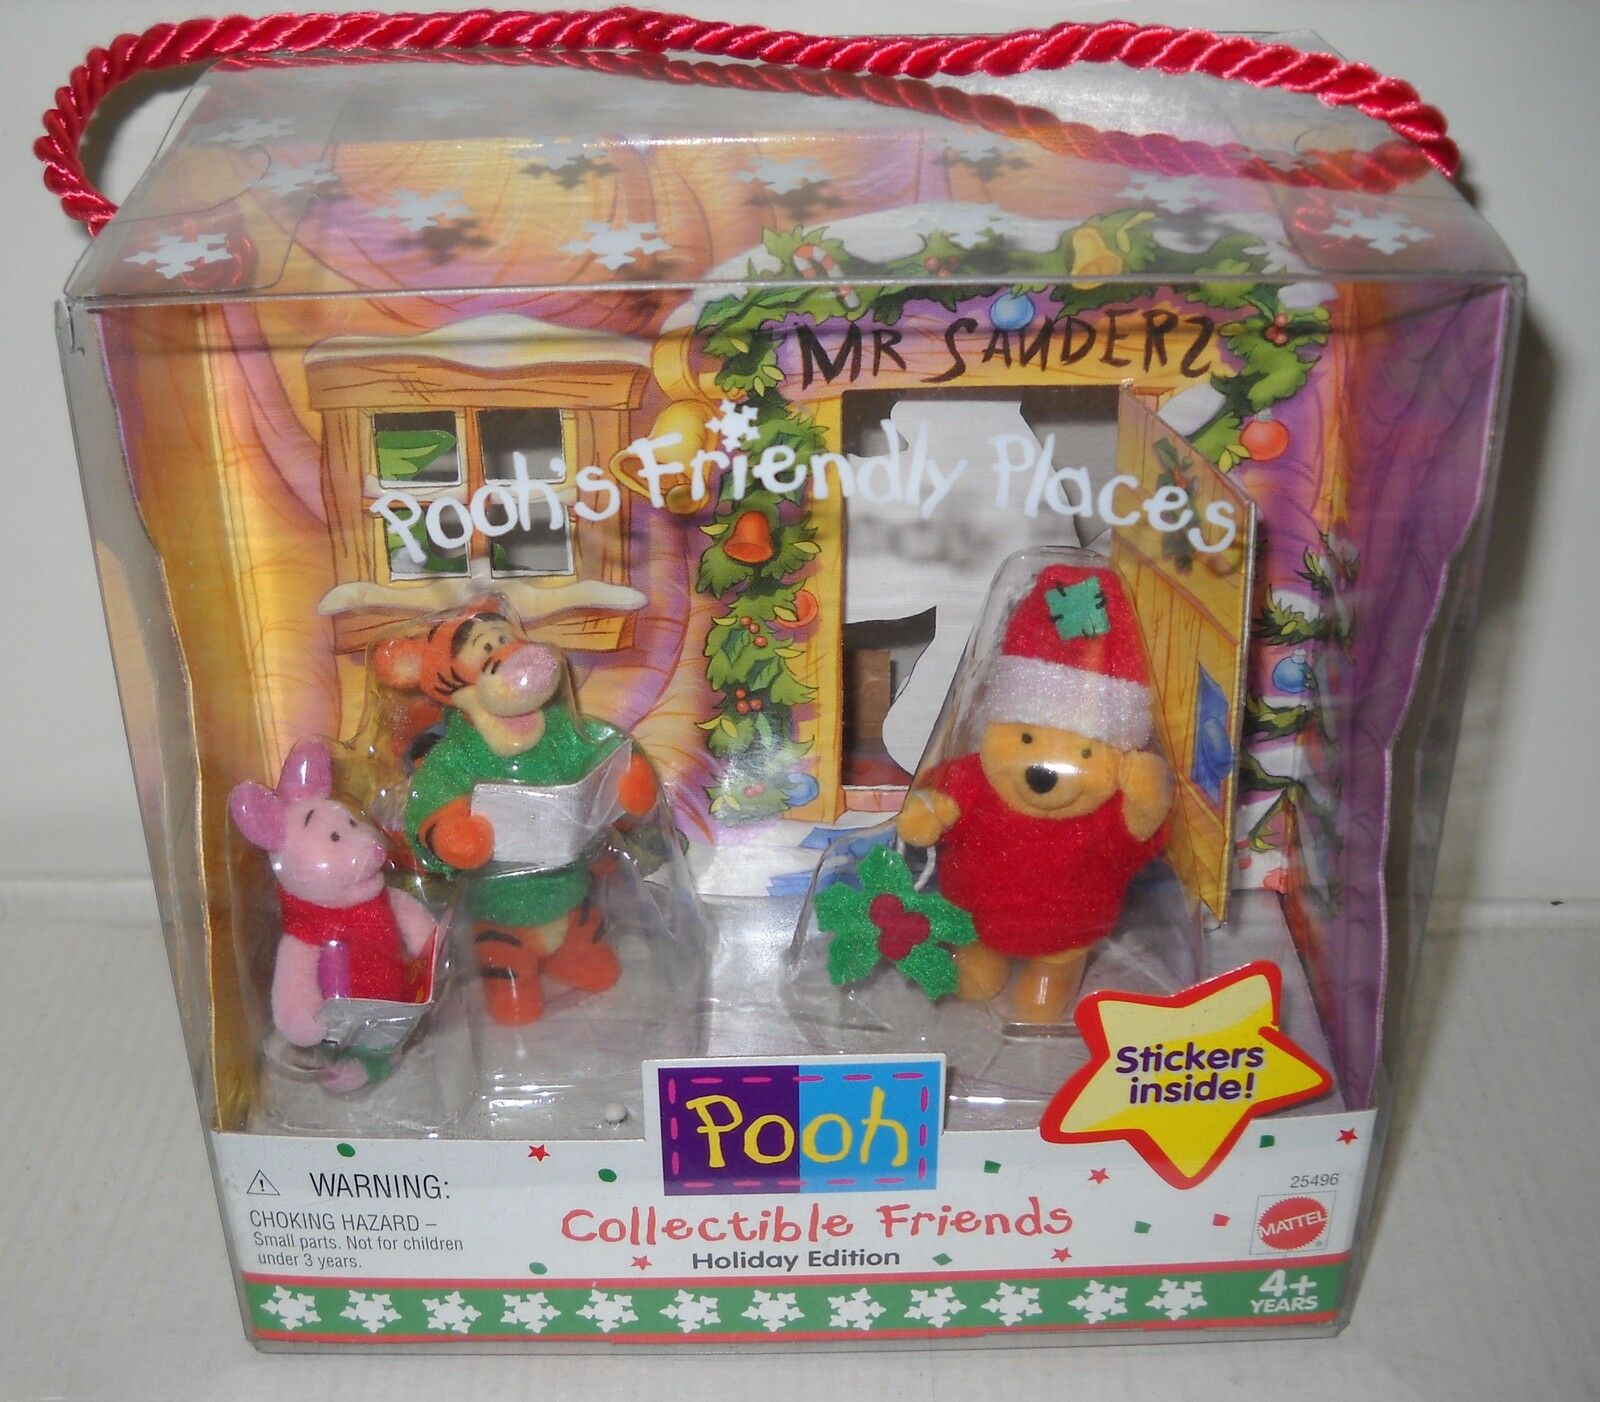 3840 NRFB Mattel Pooh's Friendly Places Target Stores Holiday Edition